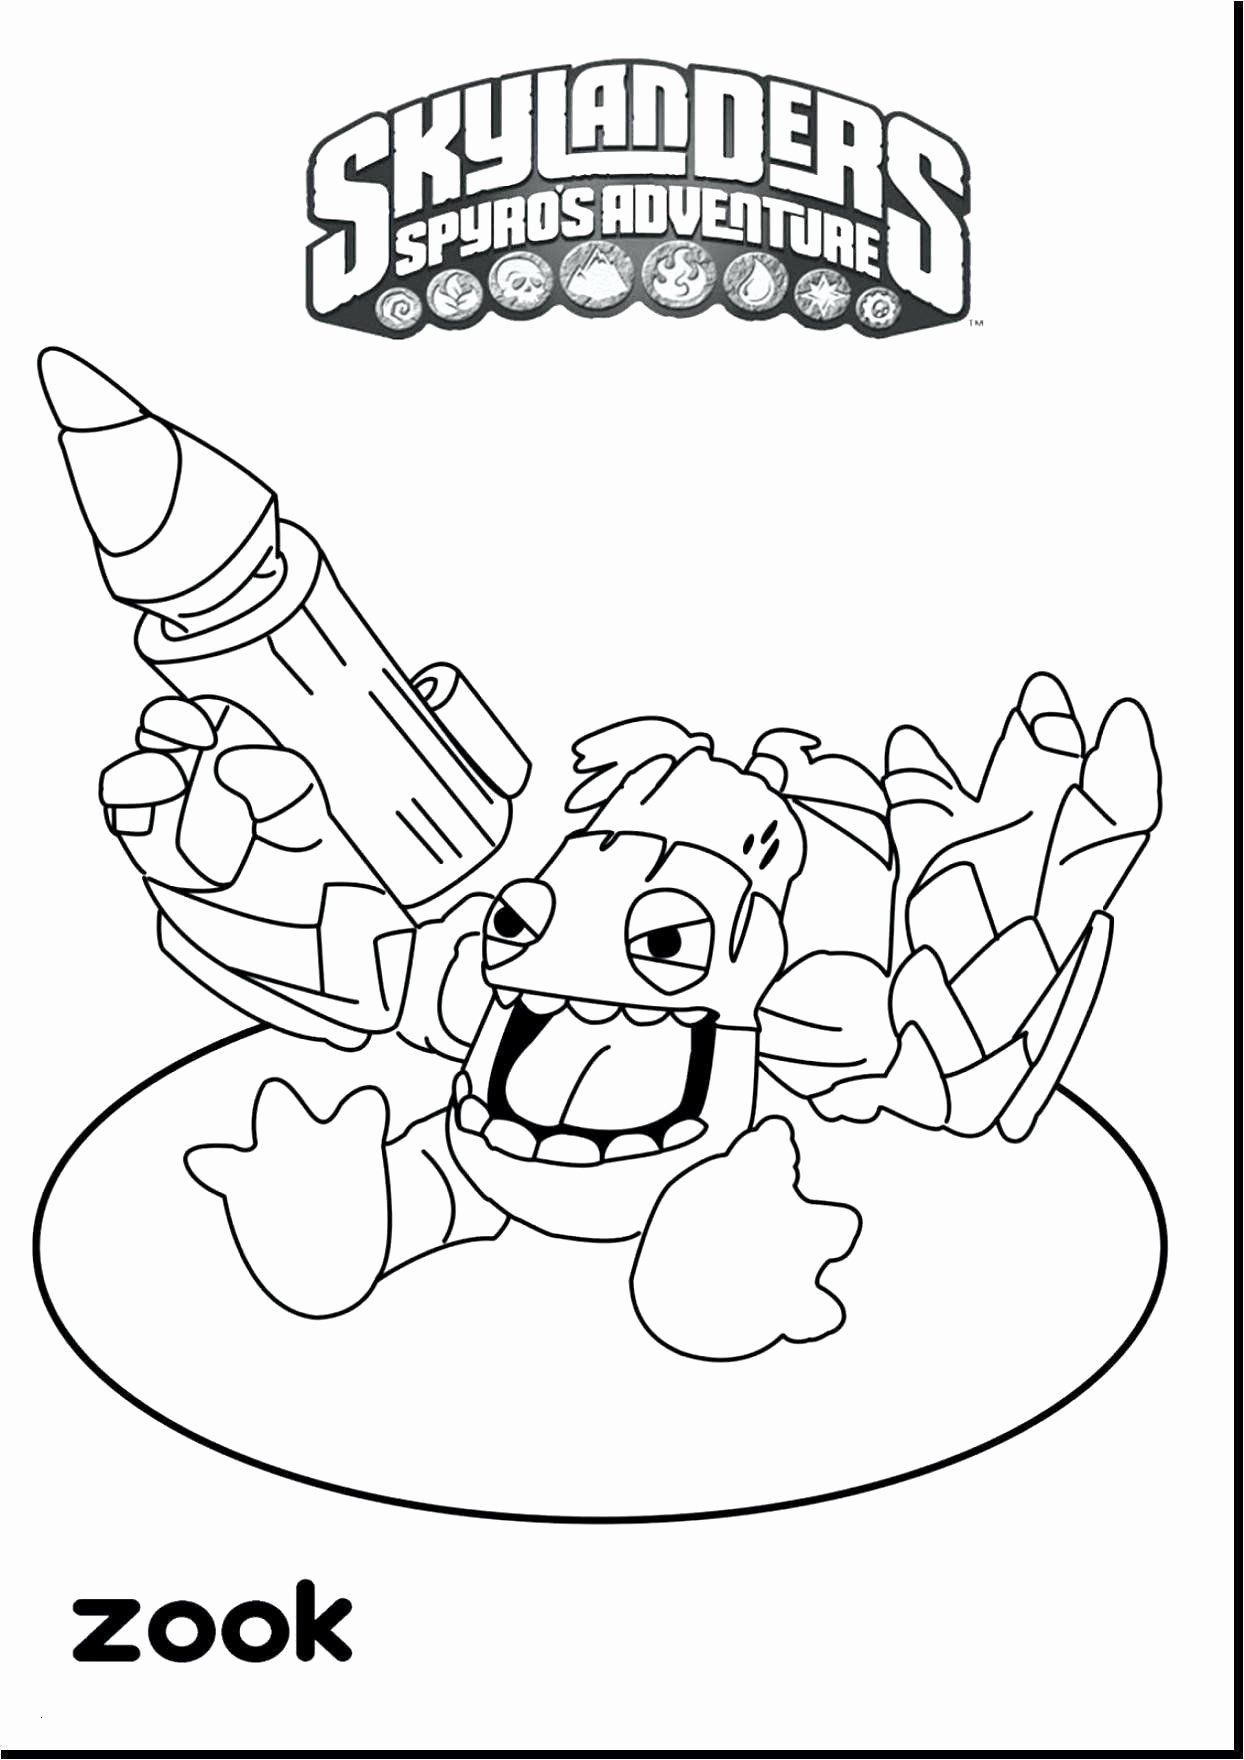 Colouring For Alphabet Luxury Coloring Book Pages For Toddlers Awesome 10 Barbie O Bear Coloring Pages Animal Coloring Pages Printable Christmas Coloring Pages